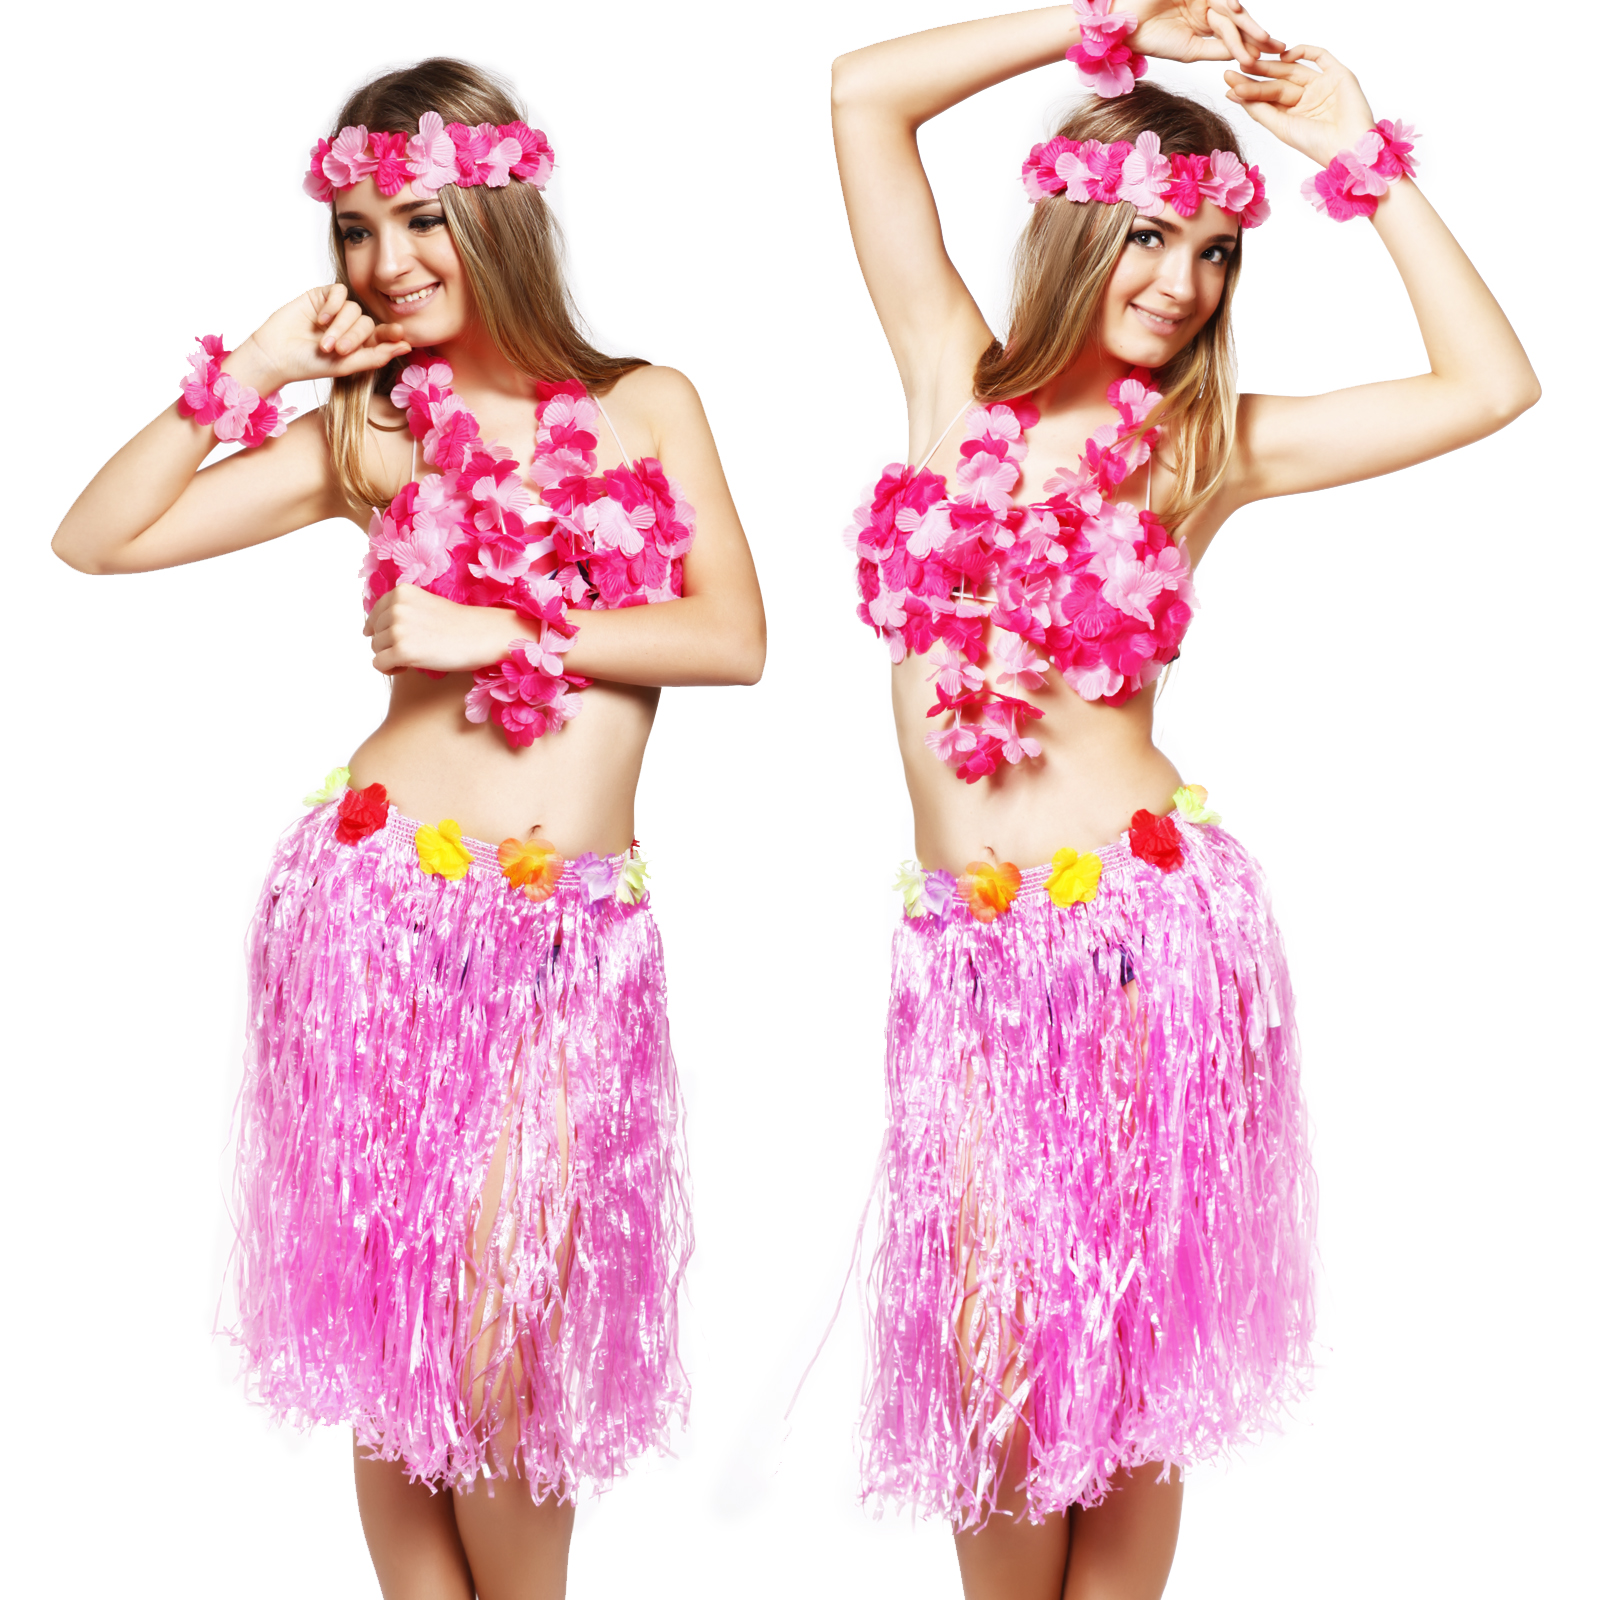 Was Hawaiian hula girls